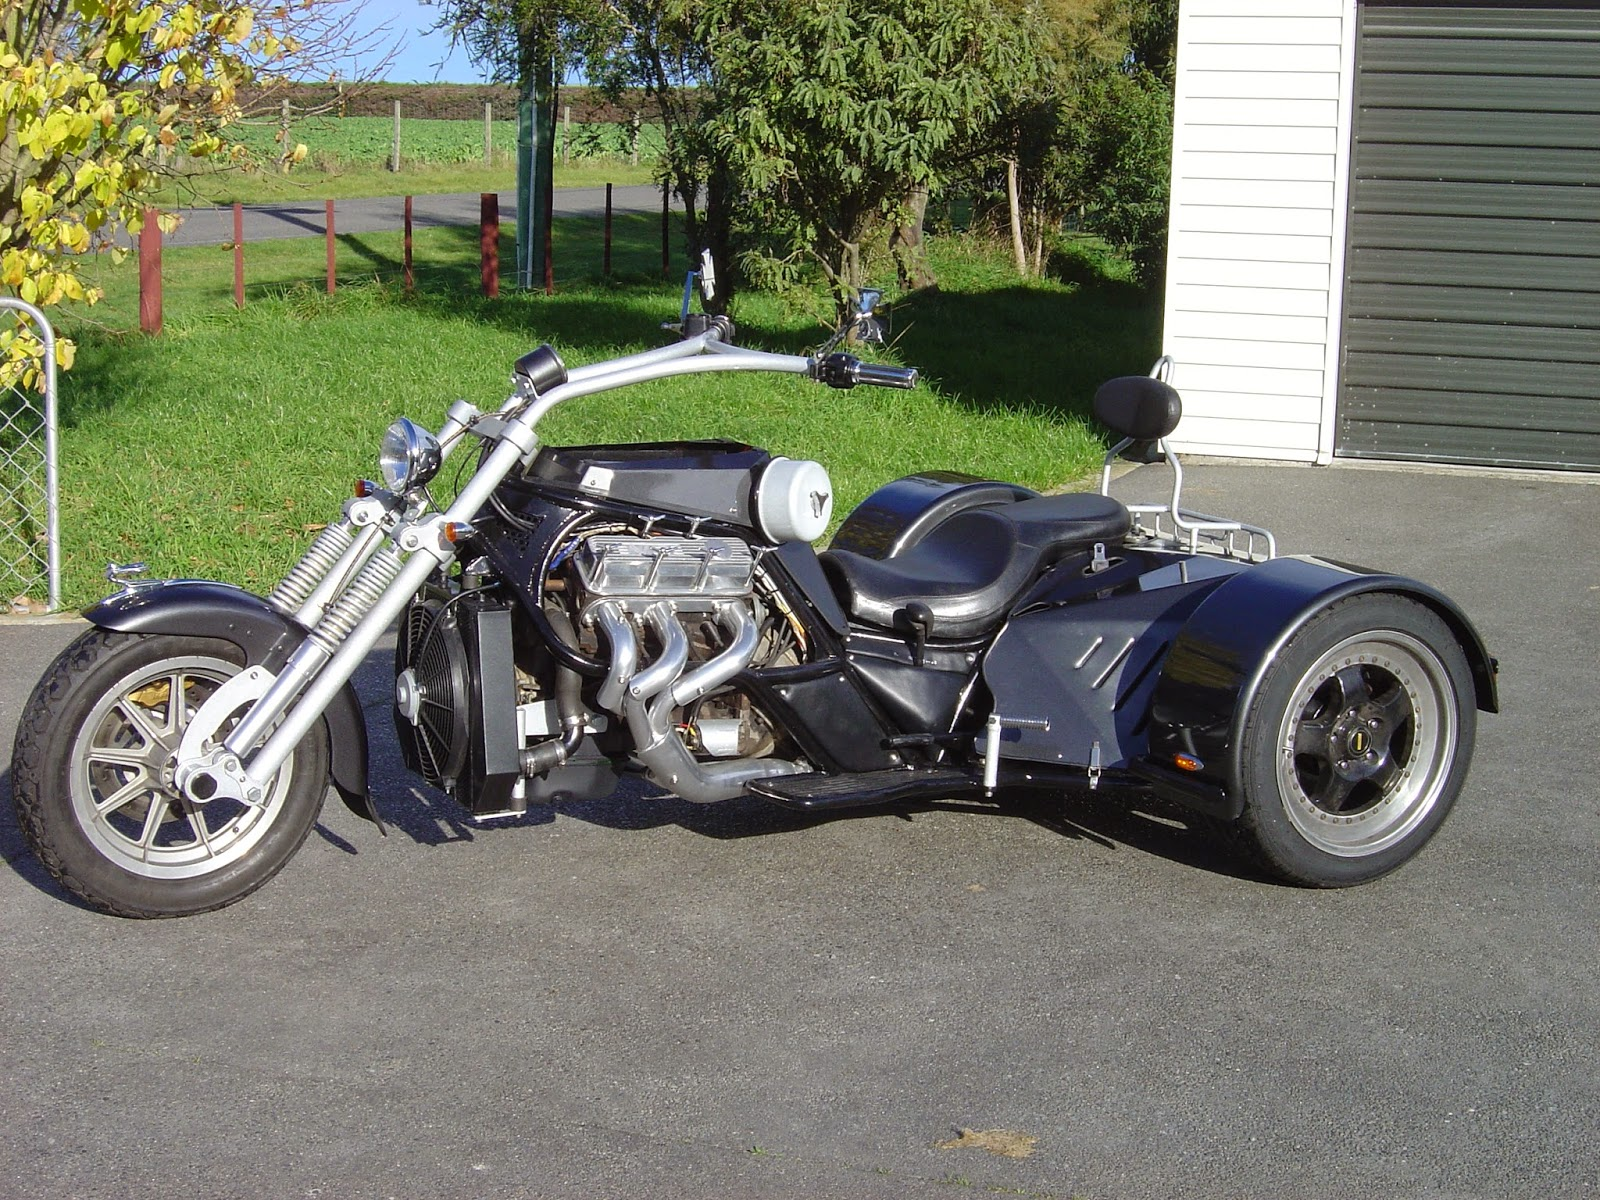 trike v6 custom build motorcycles chopper parts sun holden shining shed its